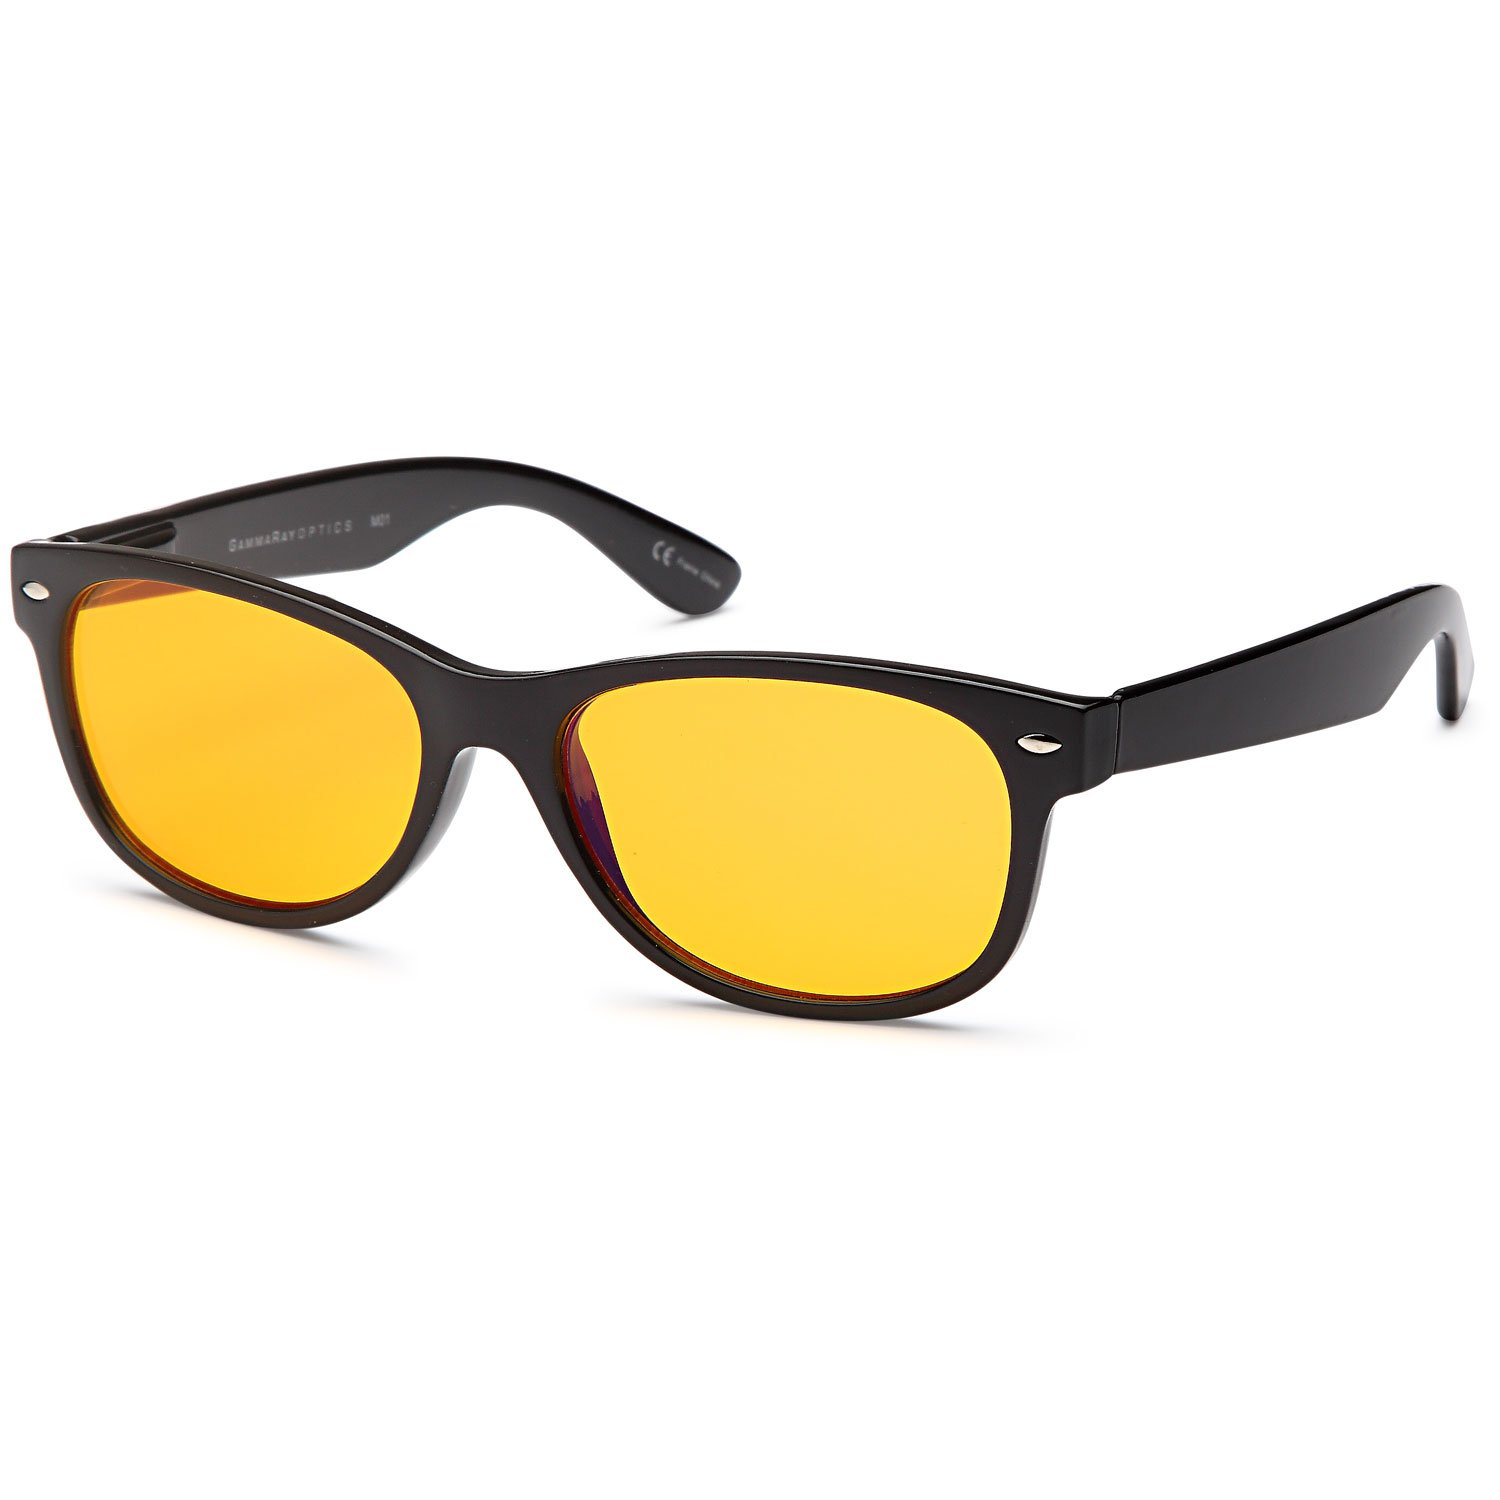 GAMMA RAY 900 Better Sleep Night Time Screen Glasses Blue Light Blocking Orange Lens for Computer Gaming TV Screen Viewing - With 0.00x Magnification